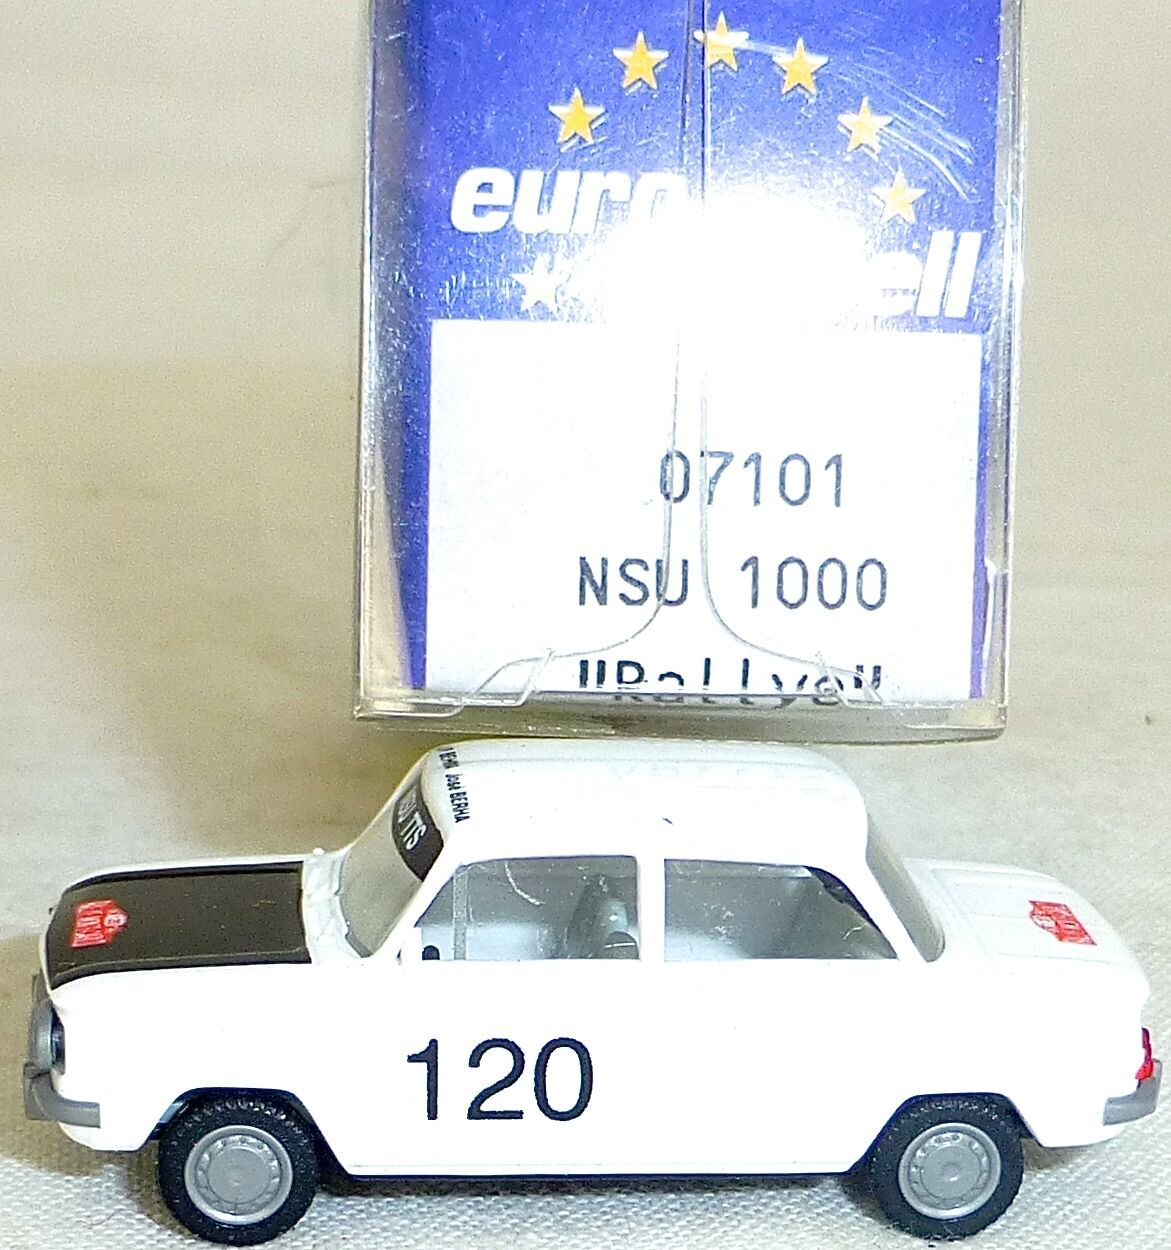 NSU 1000 Príncipe TTS TTS TTS Rally Monte-Carlo Imu   Euromodell 07101 H0 1 87 Emb.orig be9fa4